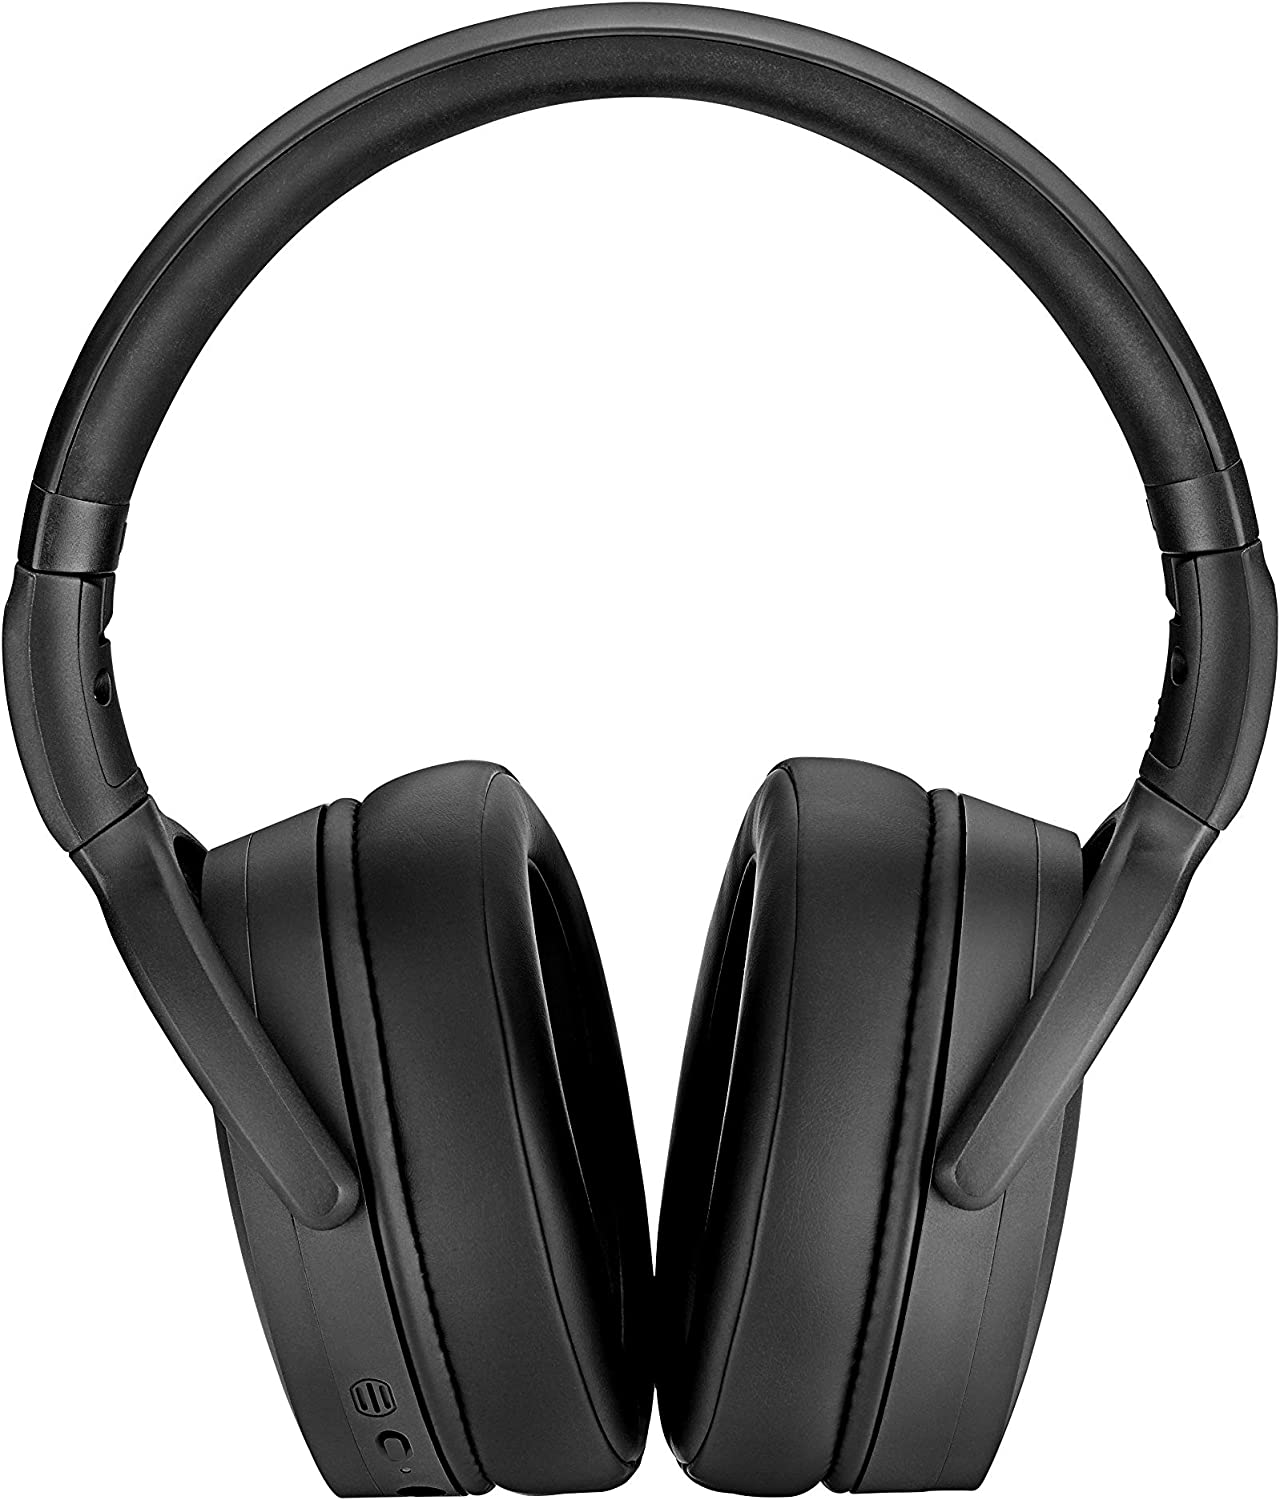 ADAPT 300 MS TEAMS OVER-EAR STEREO HEADSET IN